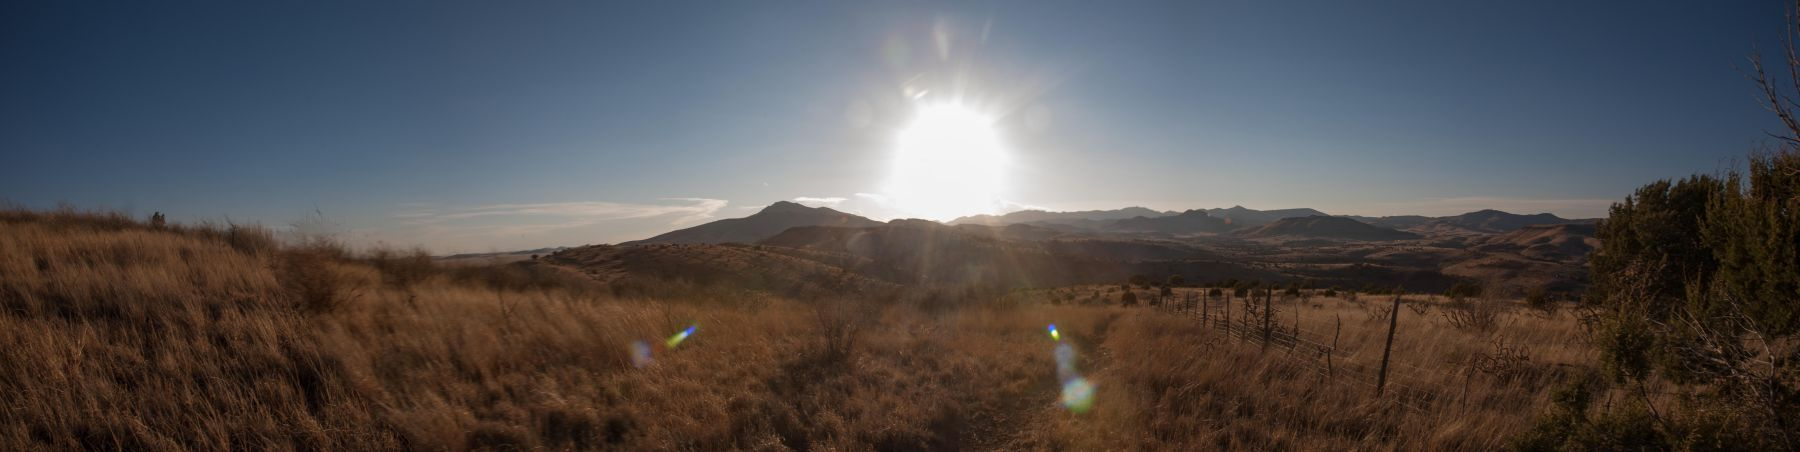 1davis_mountains_state_park_panorama2.jpg